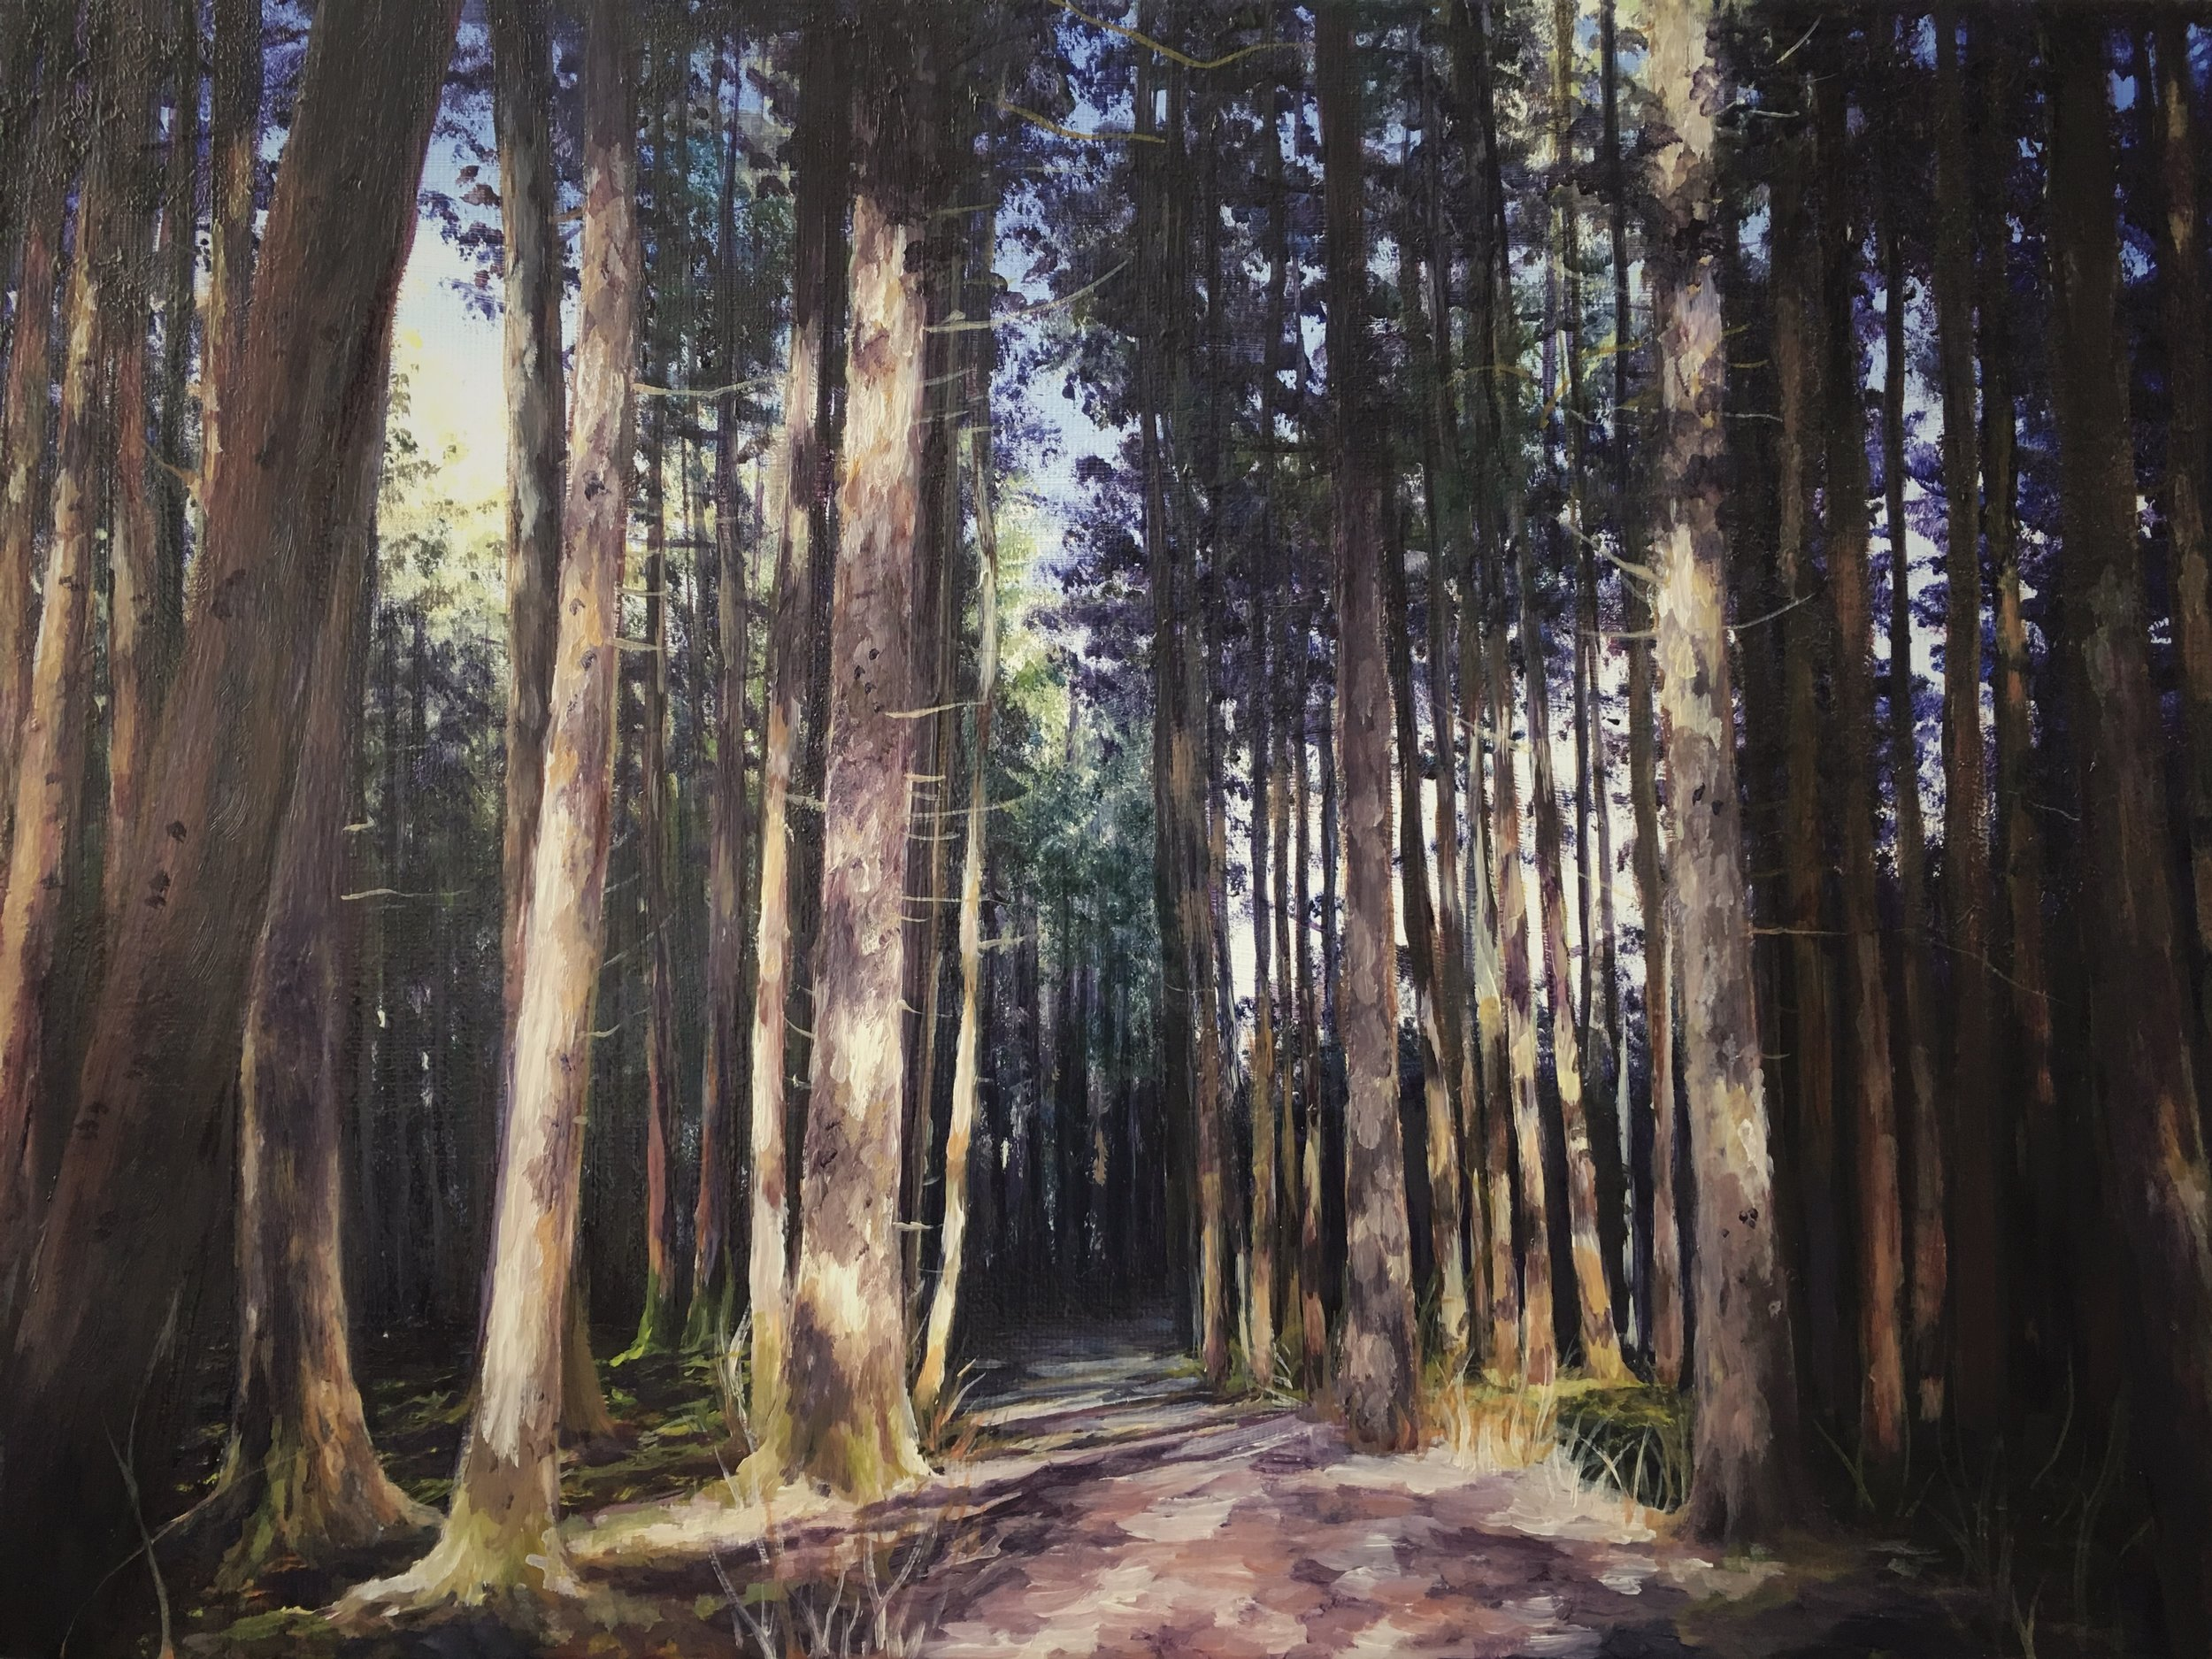 008 Rainbow Forest (Oil on canvas).jpg